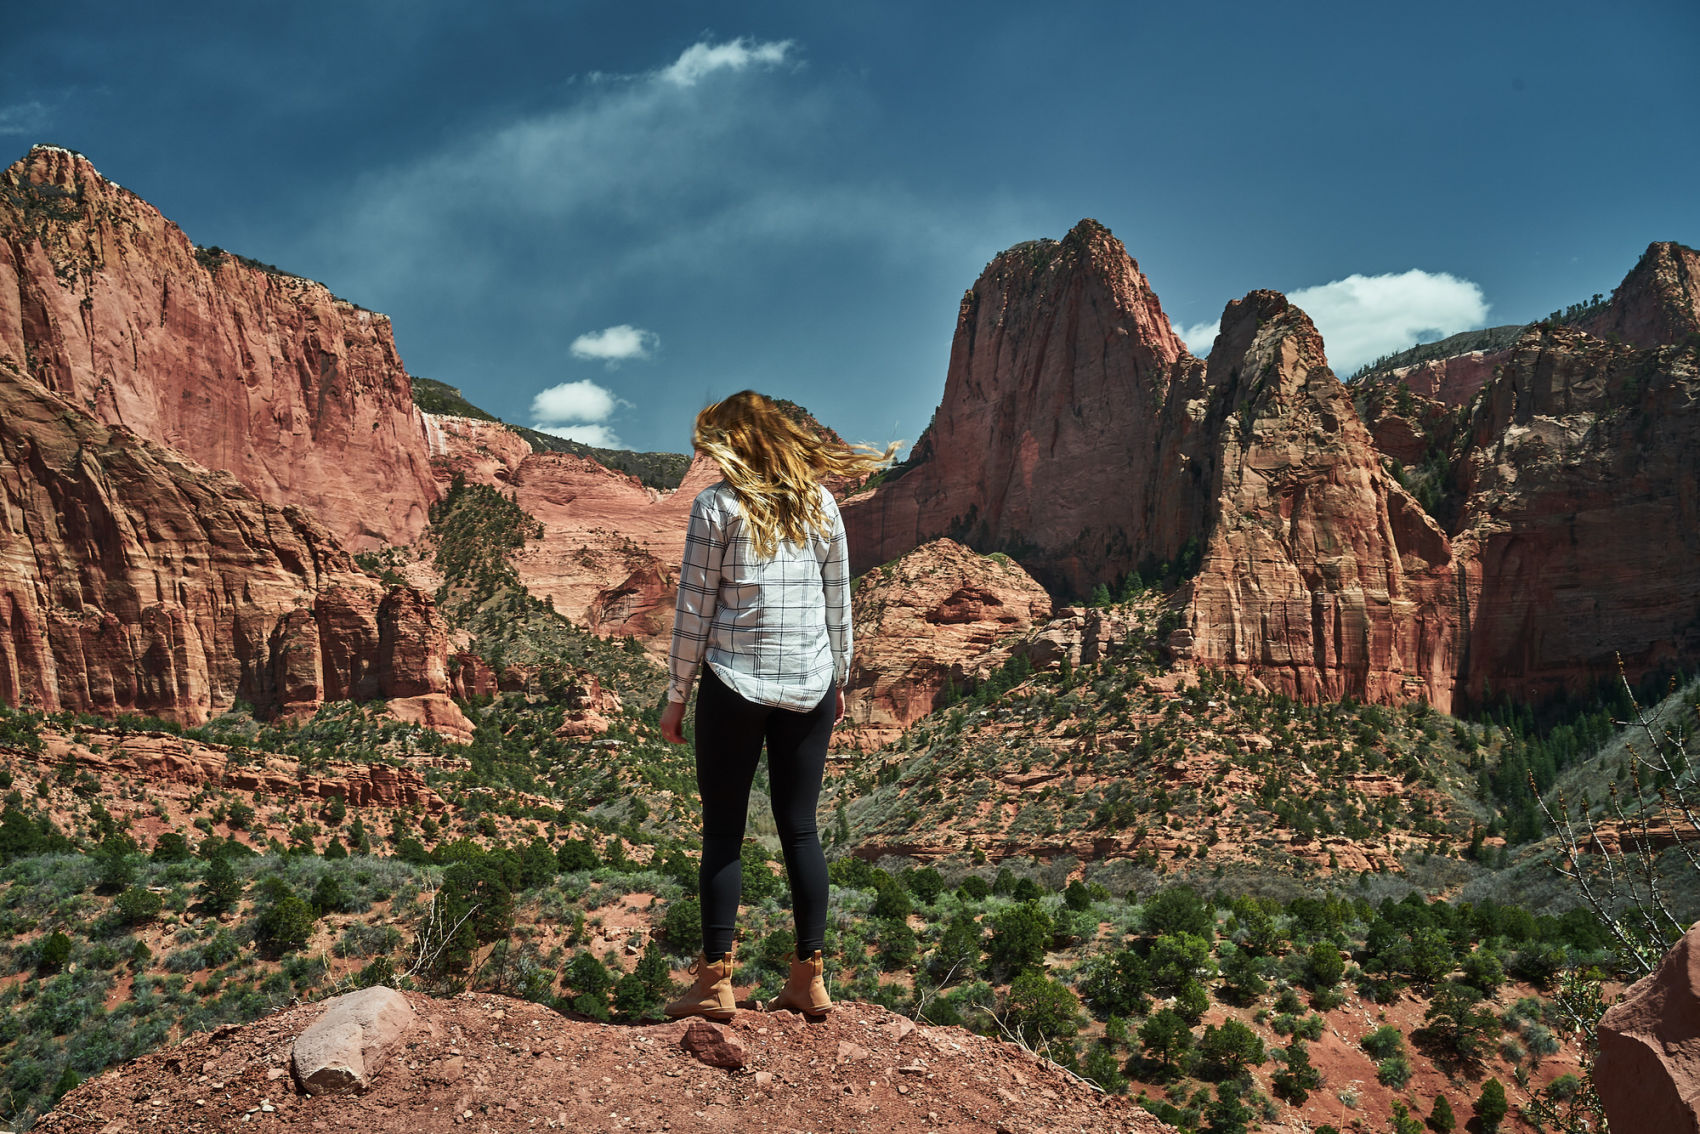 Amanda Outside - your source for all things hiking, backpacking, and camping in Utah. Pictured here is Kolob Canyon in Zion National Park. Click through for your guide to visiting this area including when to go, how to get backpacking permits, and reviews of all the trails in this area! www.amandaoutside.com #hikingtips #utah #zion